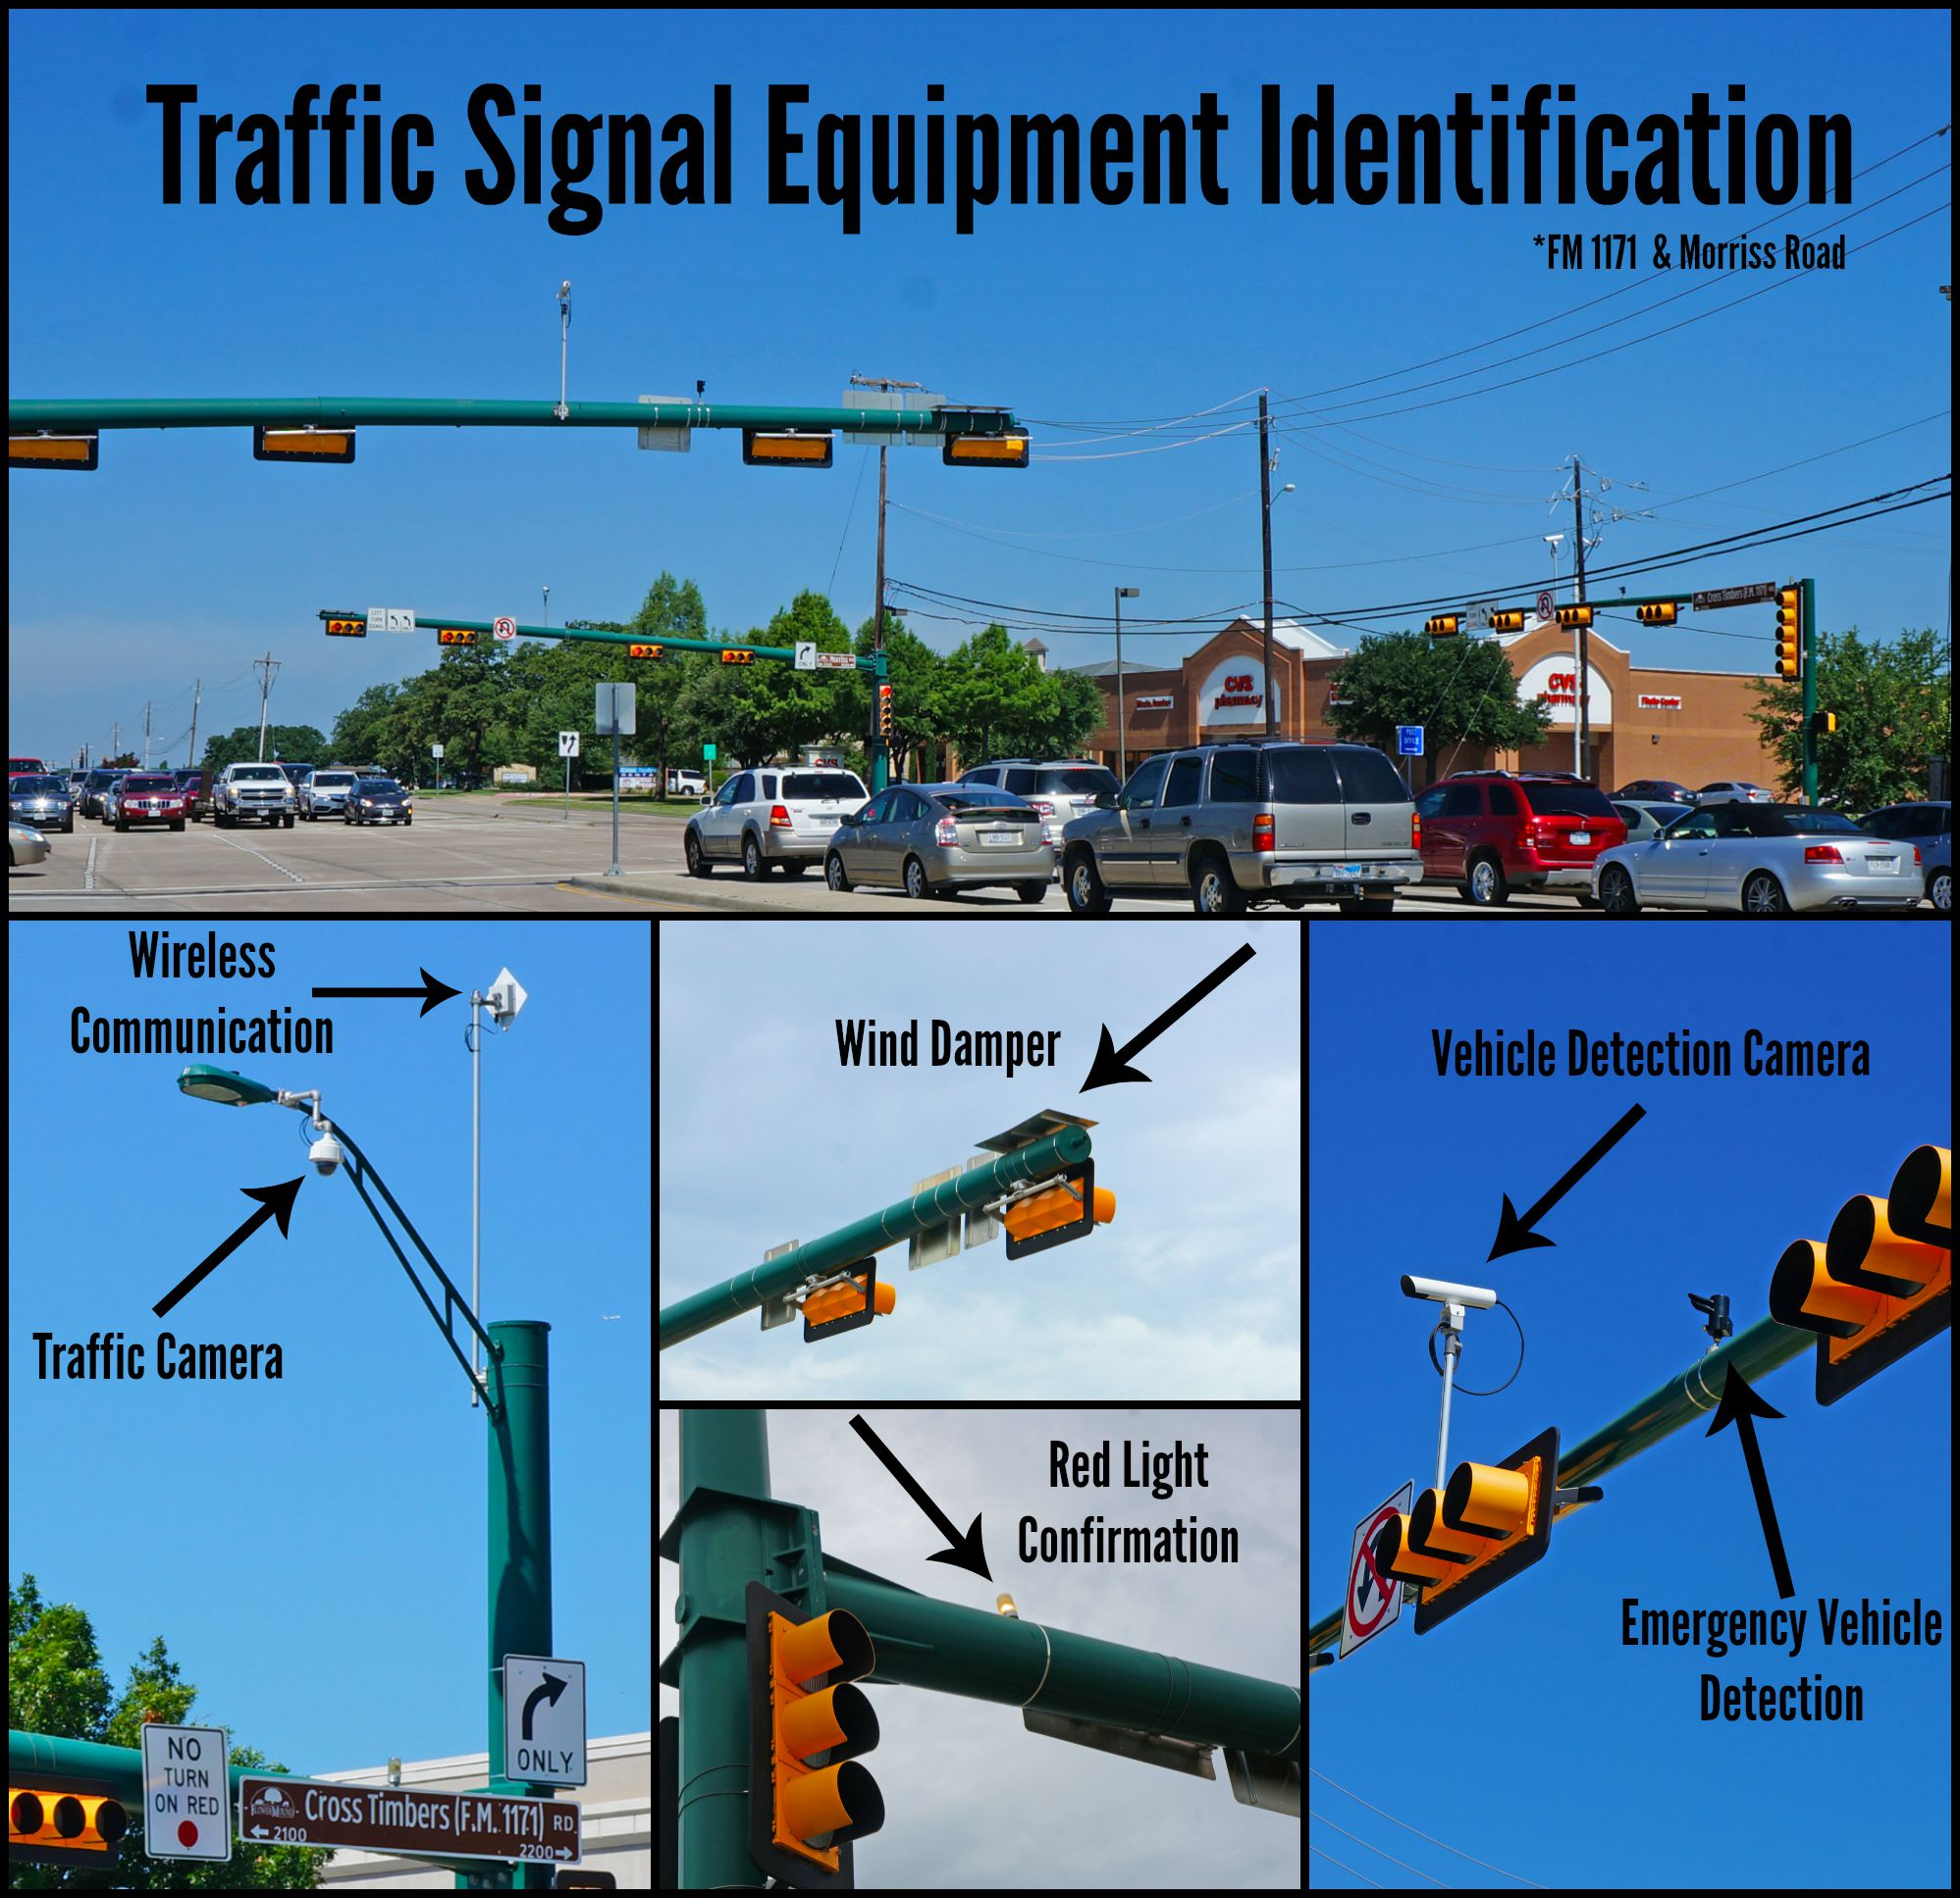 Traffic Signal Identification.jpg